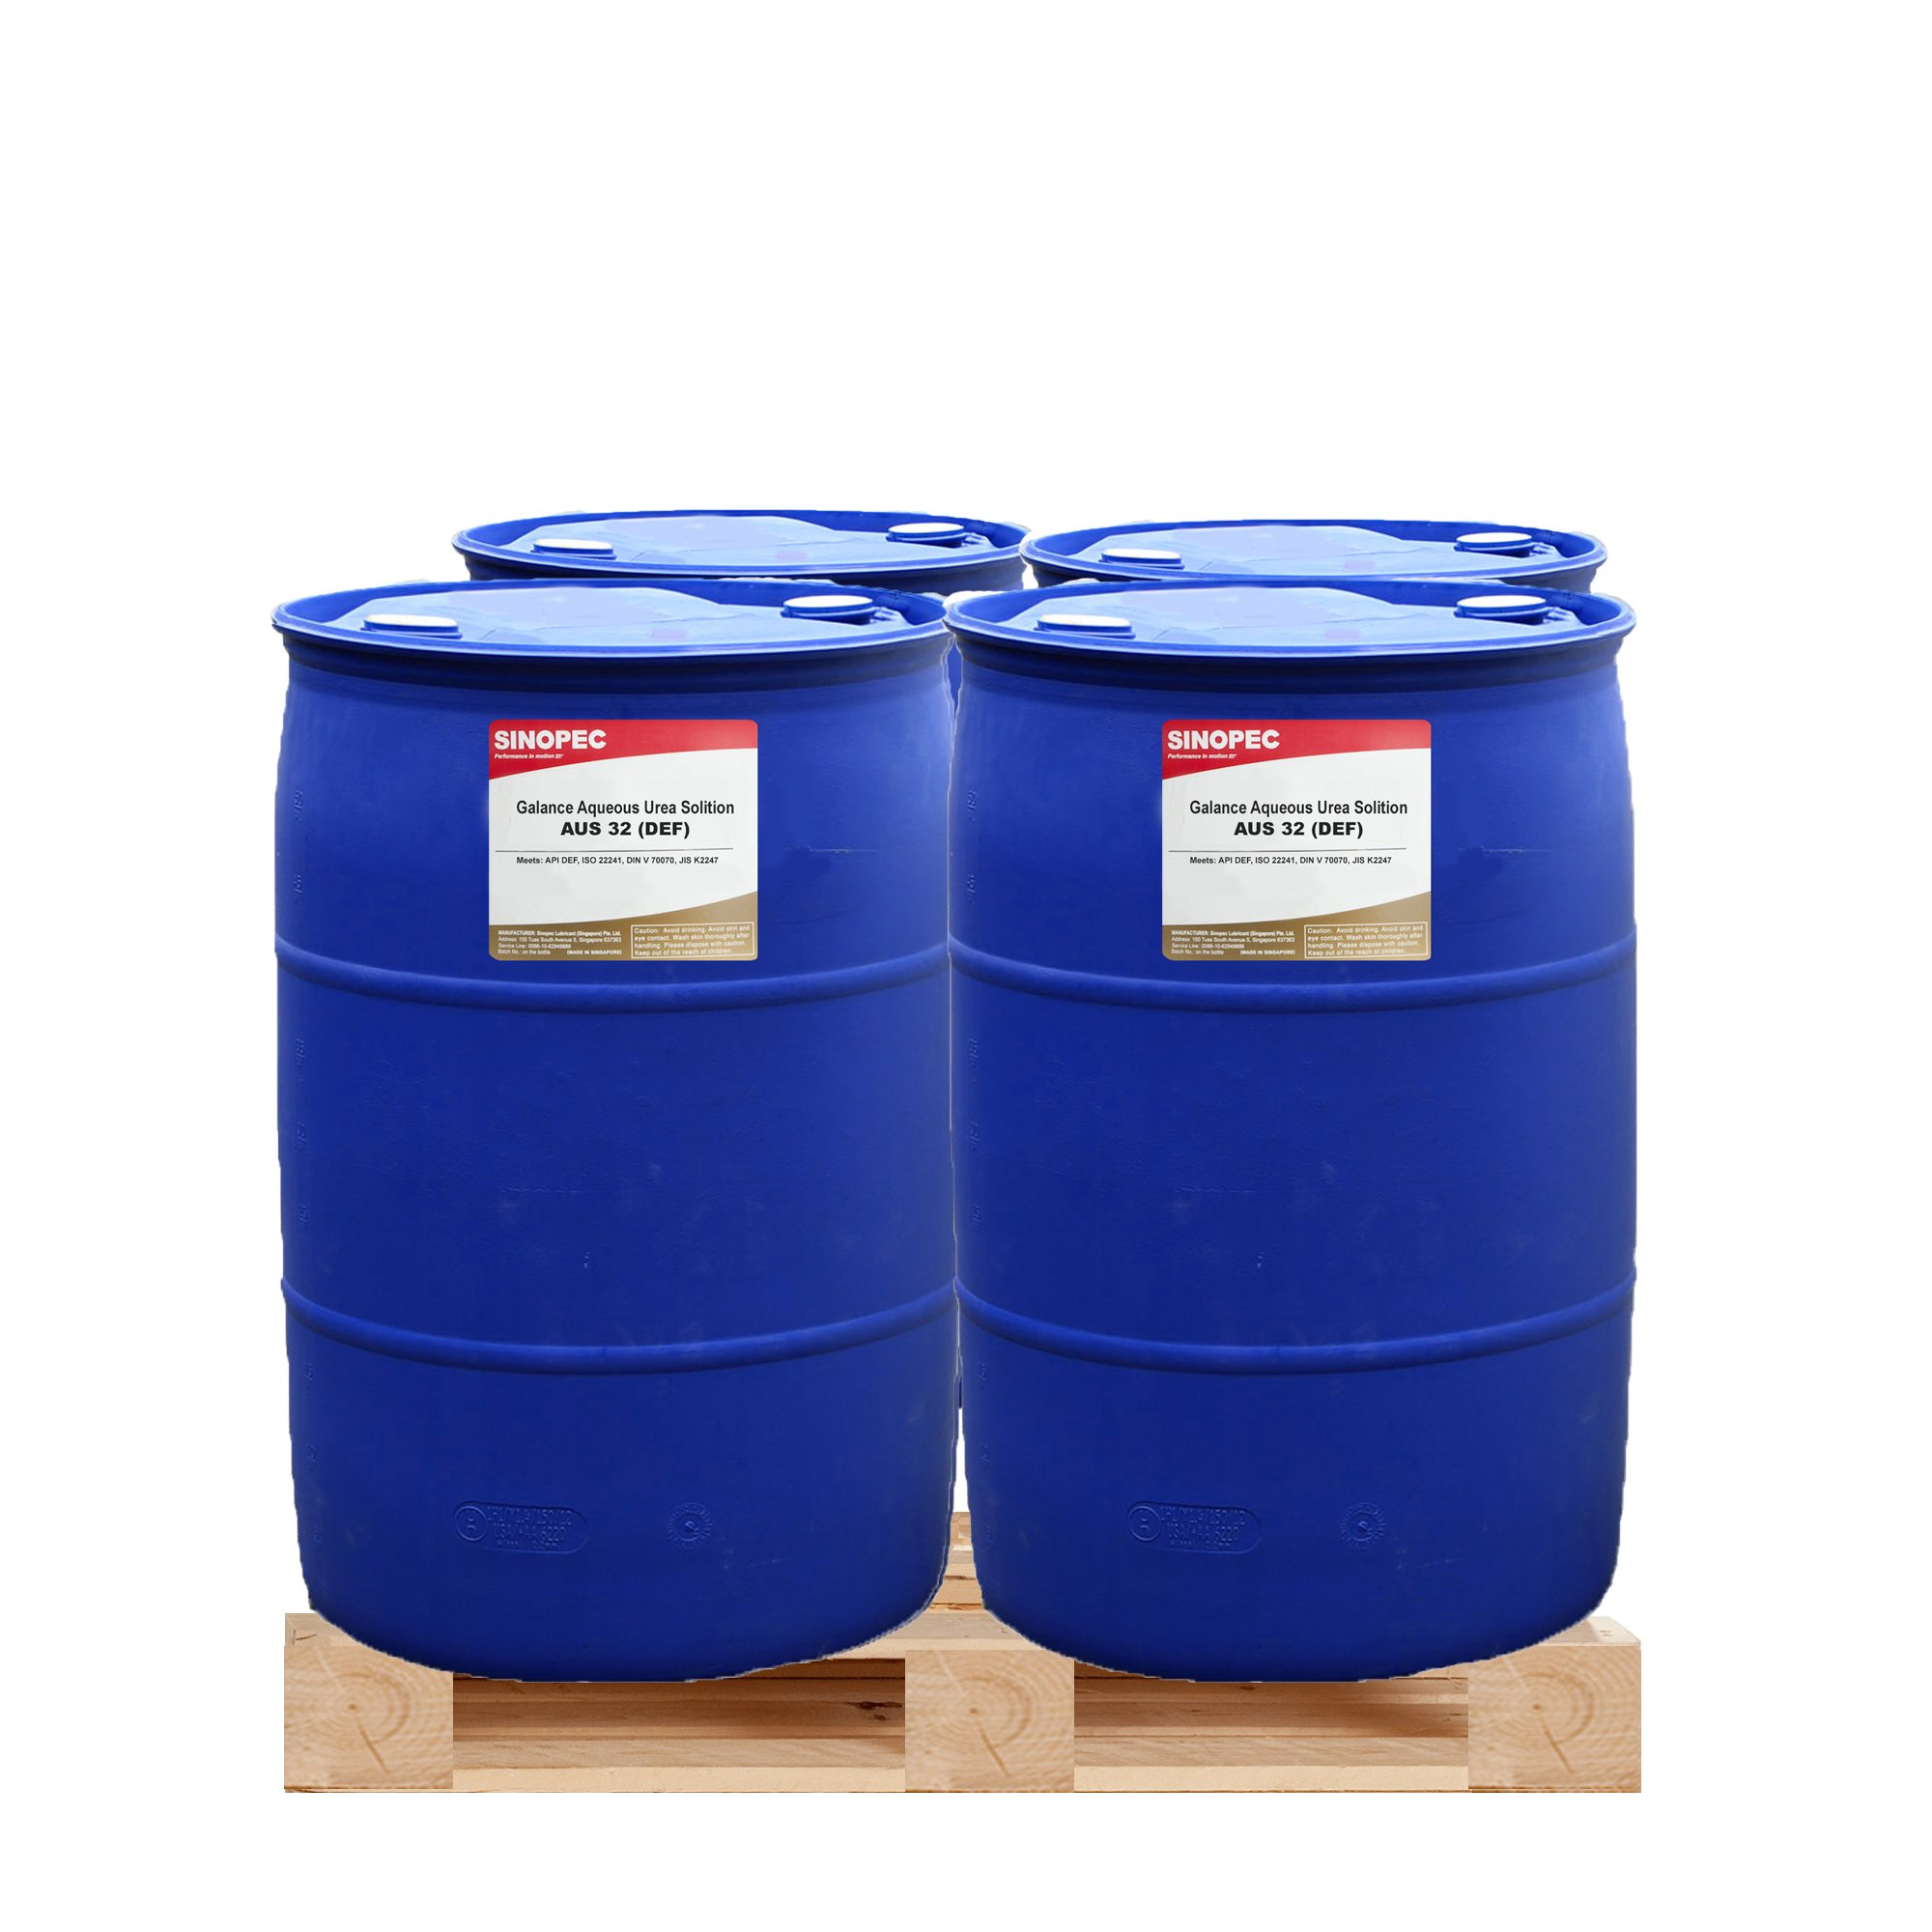 $175 Each - DEF Diesel Exhaust Fluid - (4) 55 Gallon Drum